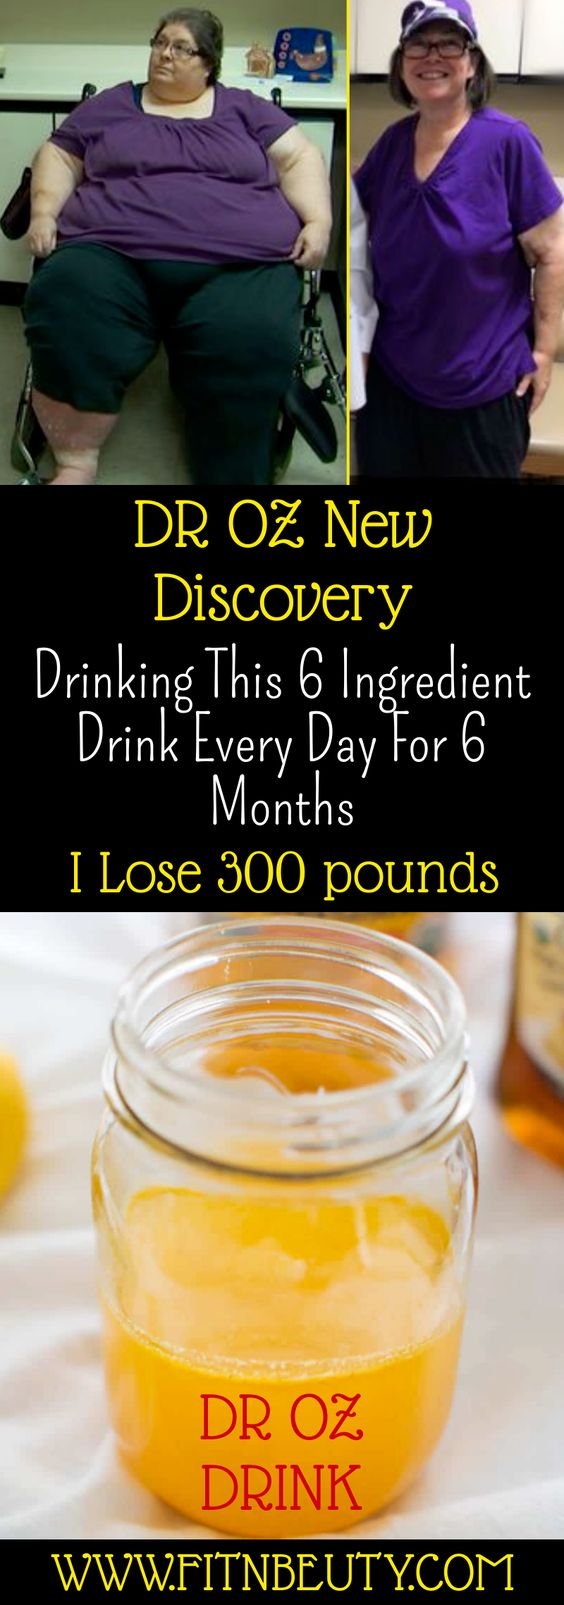 DR OZ New Discovery Drinking This 6 Ingredient Drink Every Day For 6 Months I Lose 300 pounds